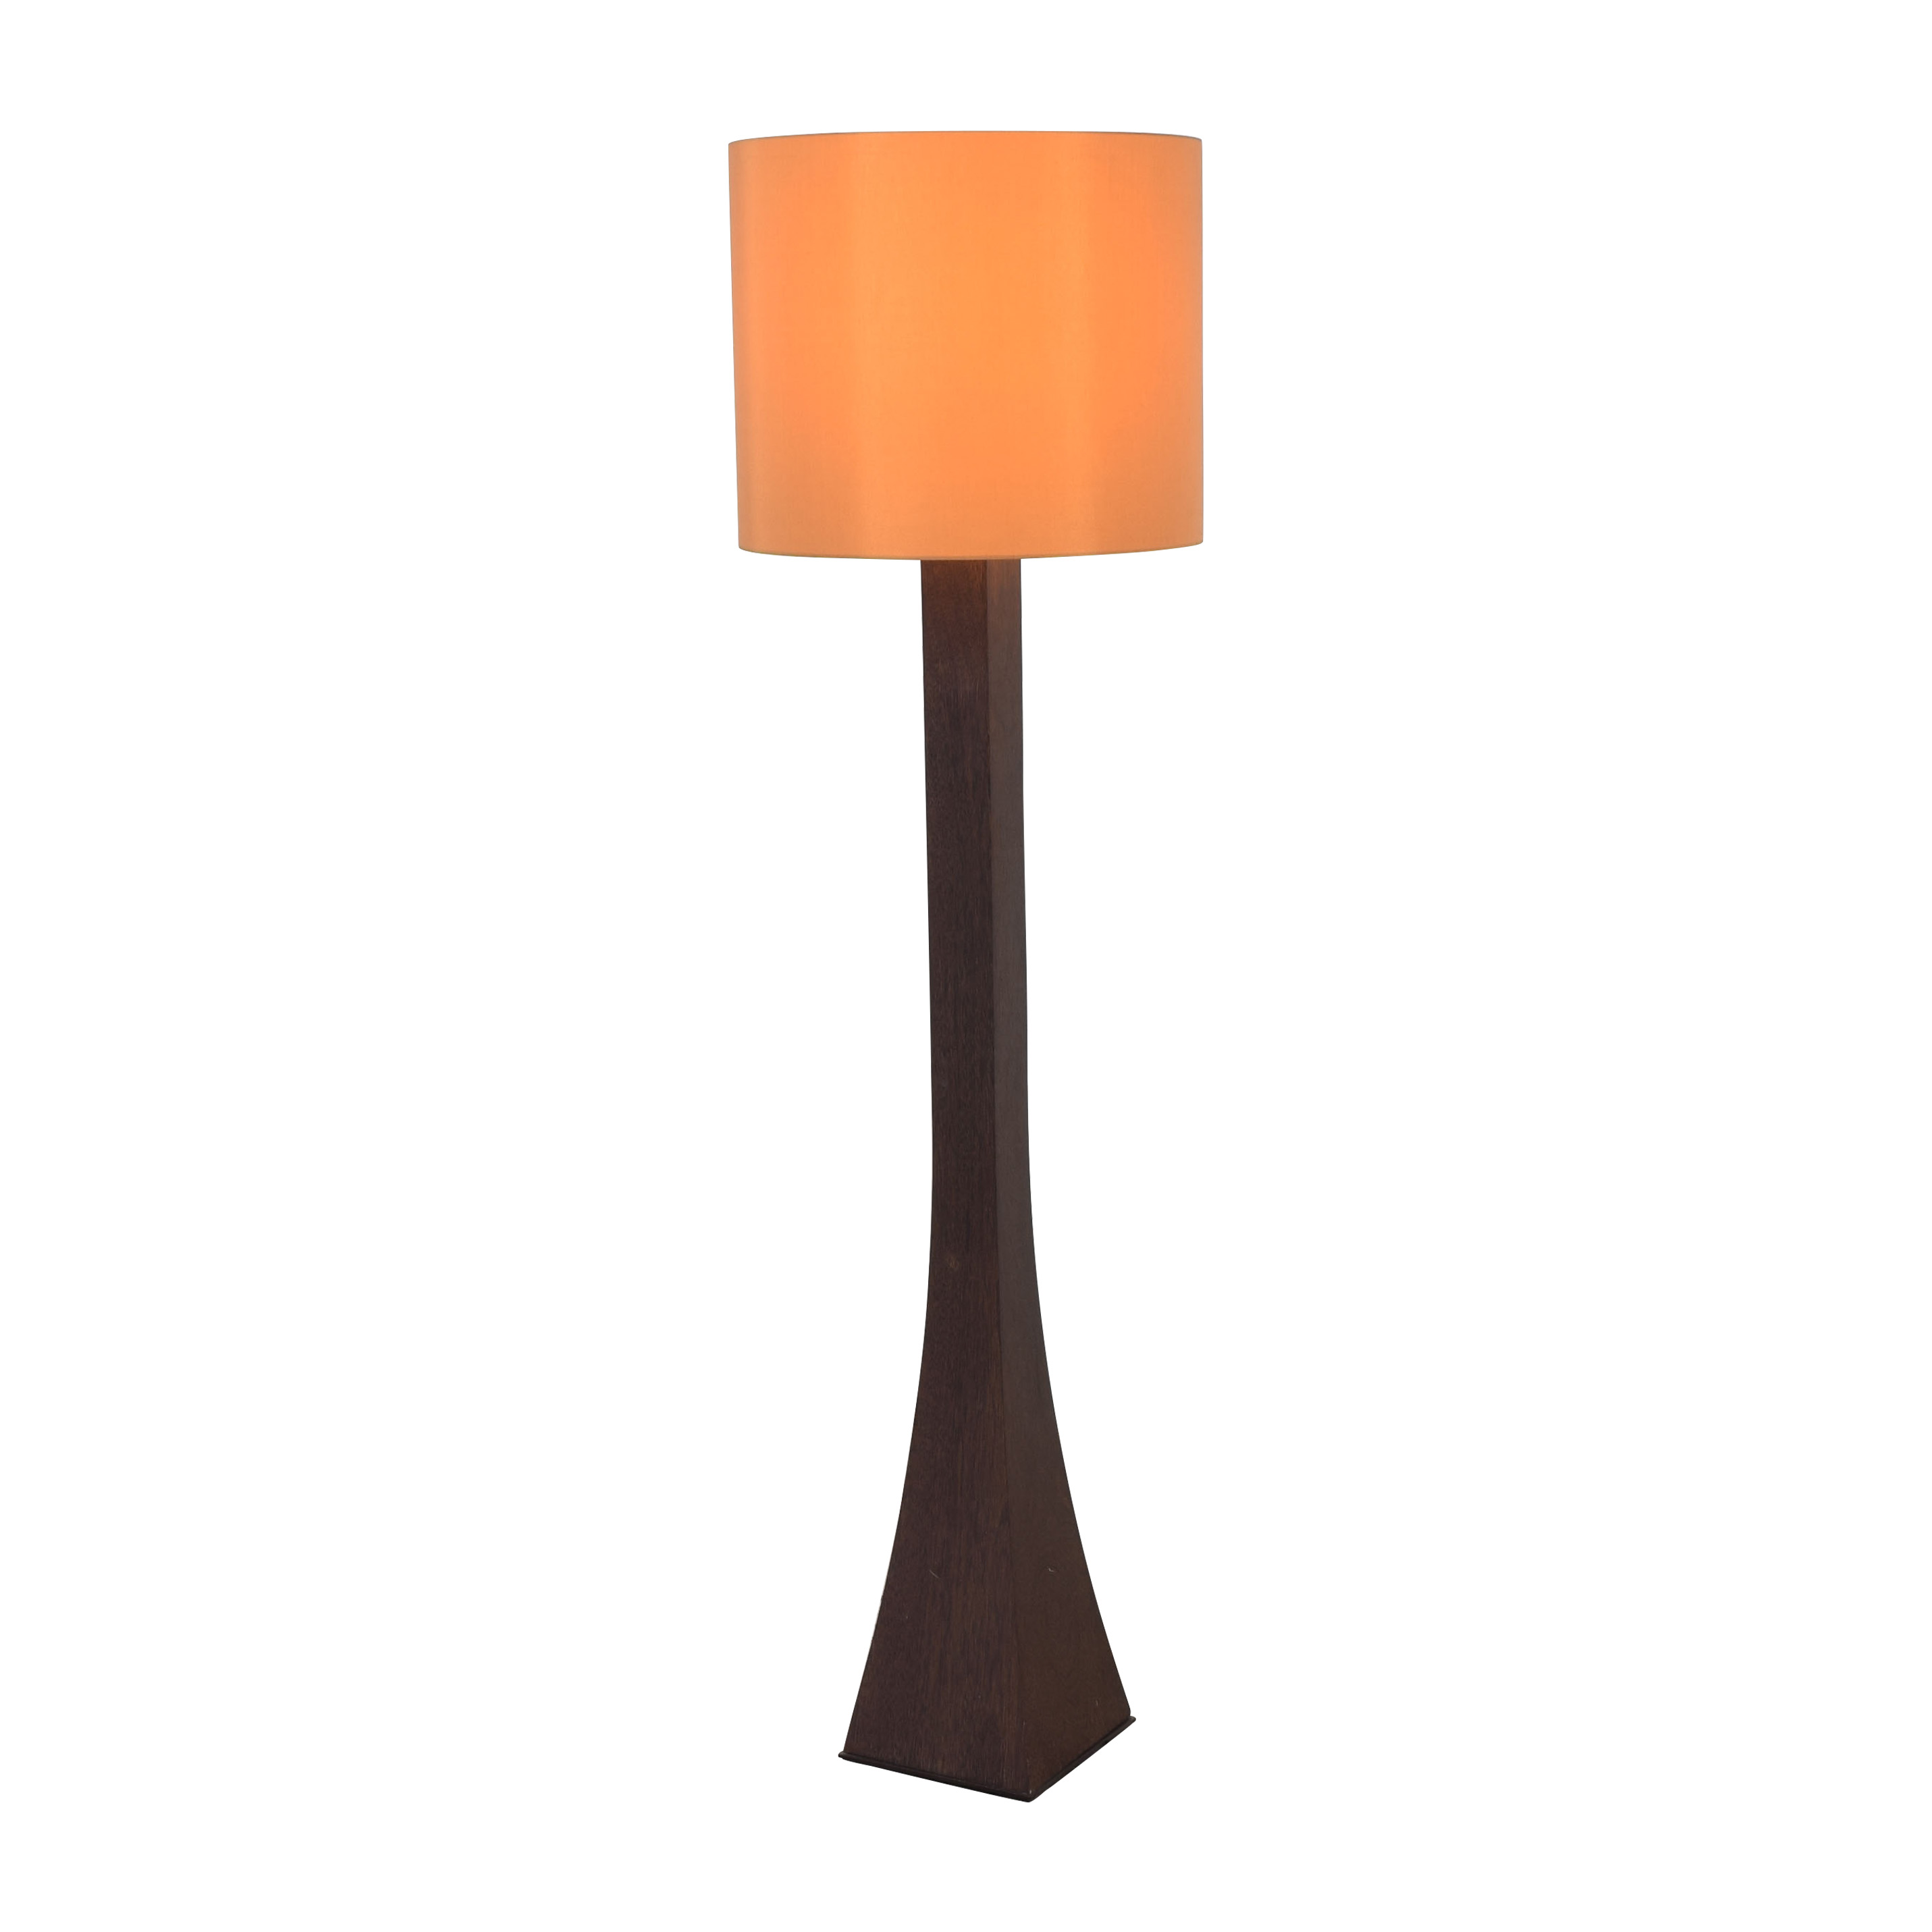 Armani Casa Tall Floor Lamp / Decor